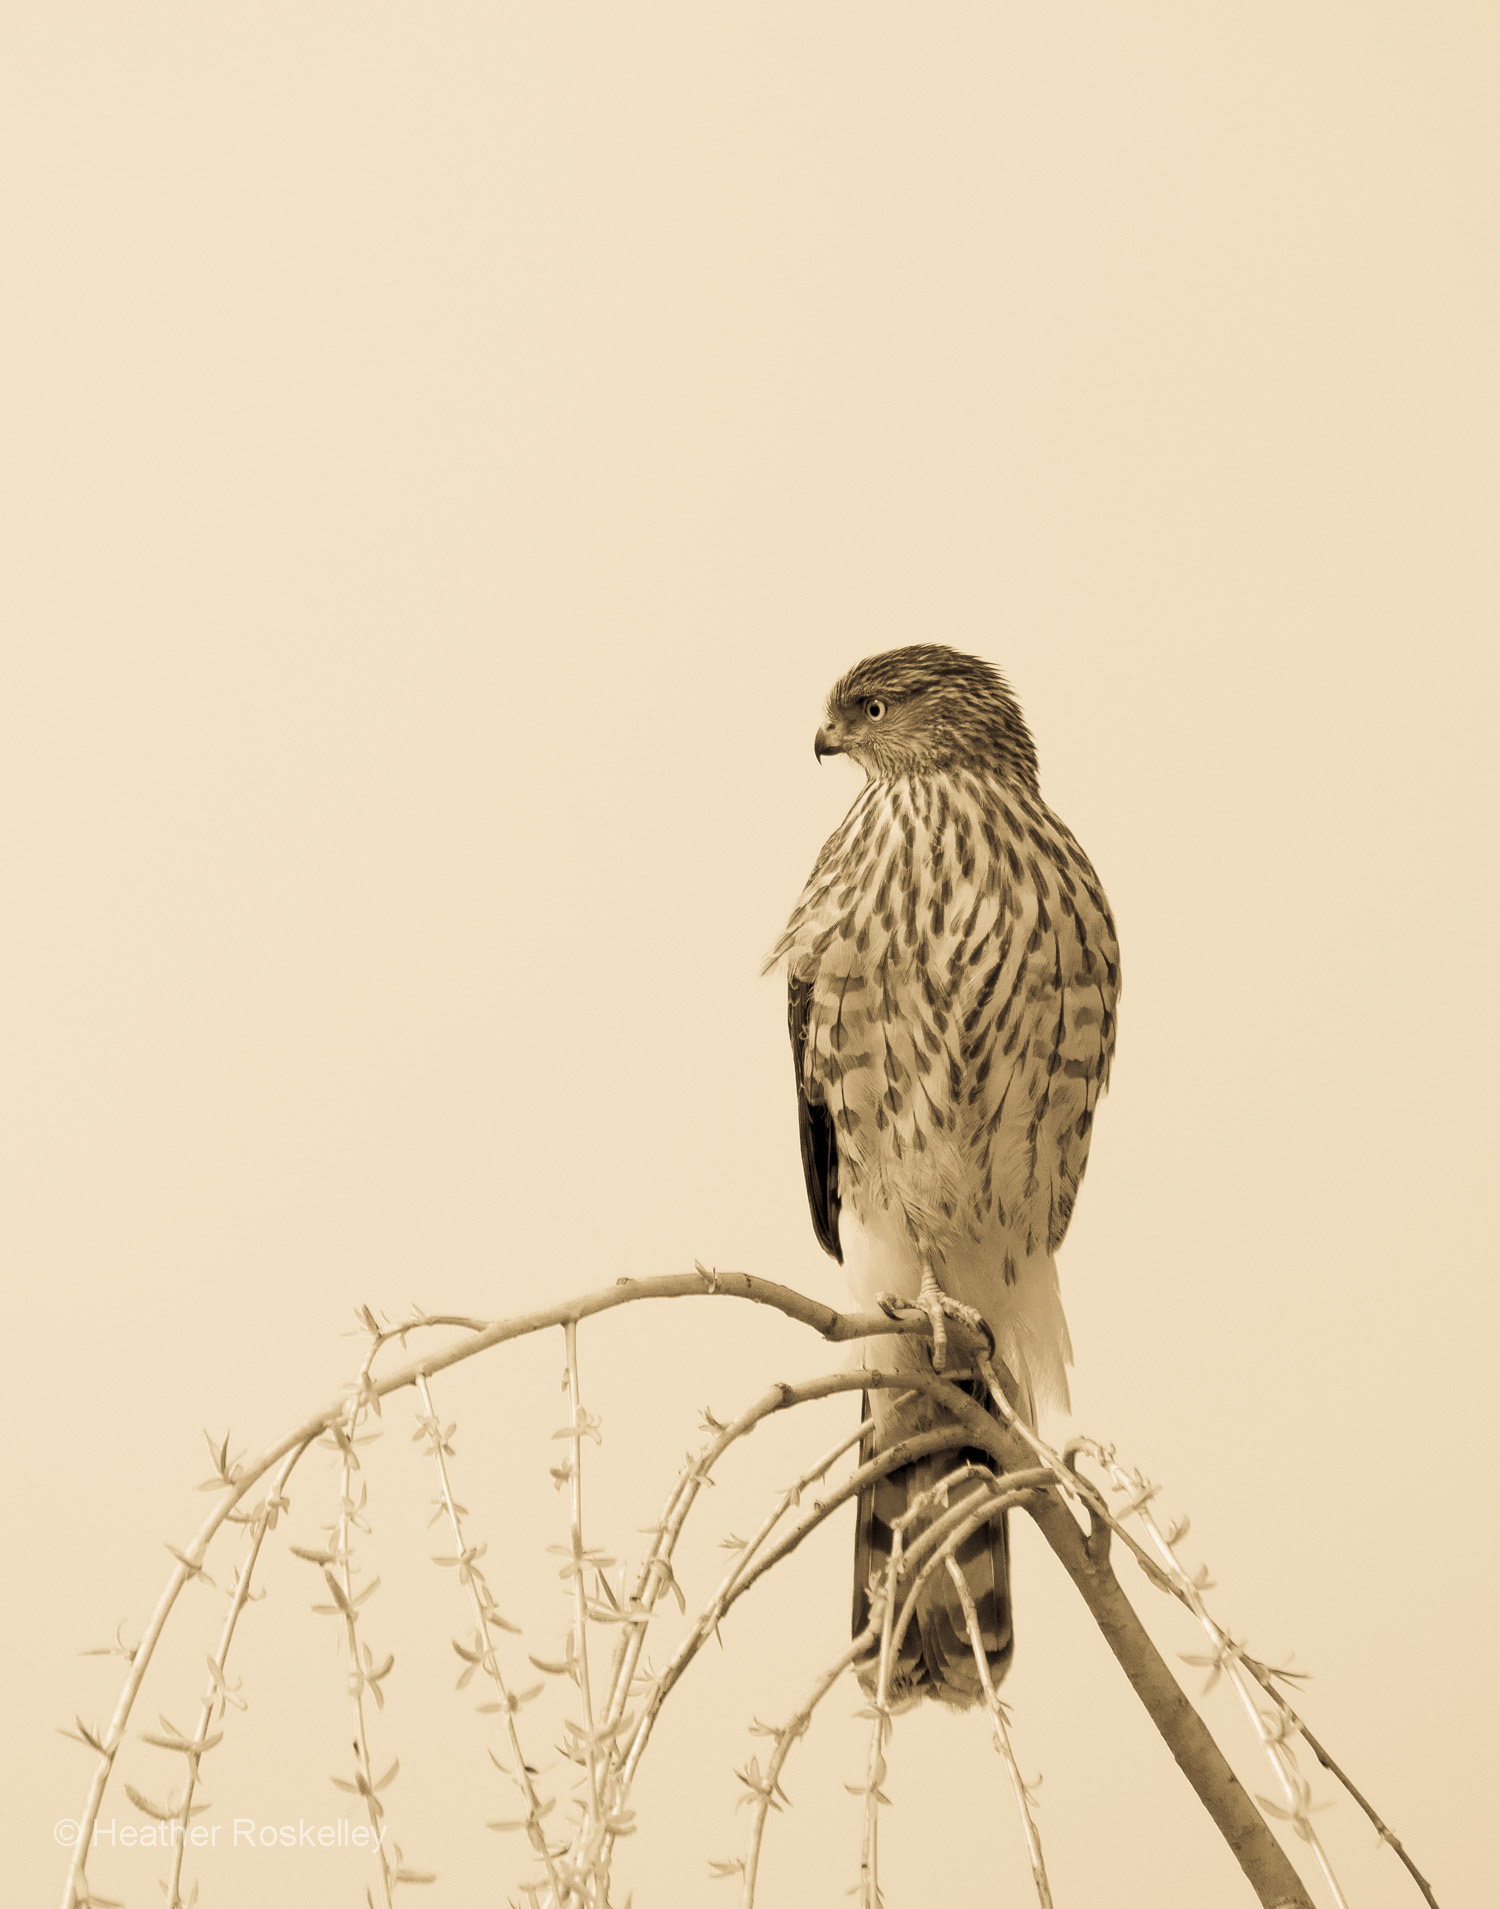 Young Cooper's Hawk in Willow Tree